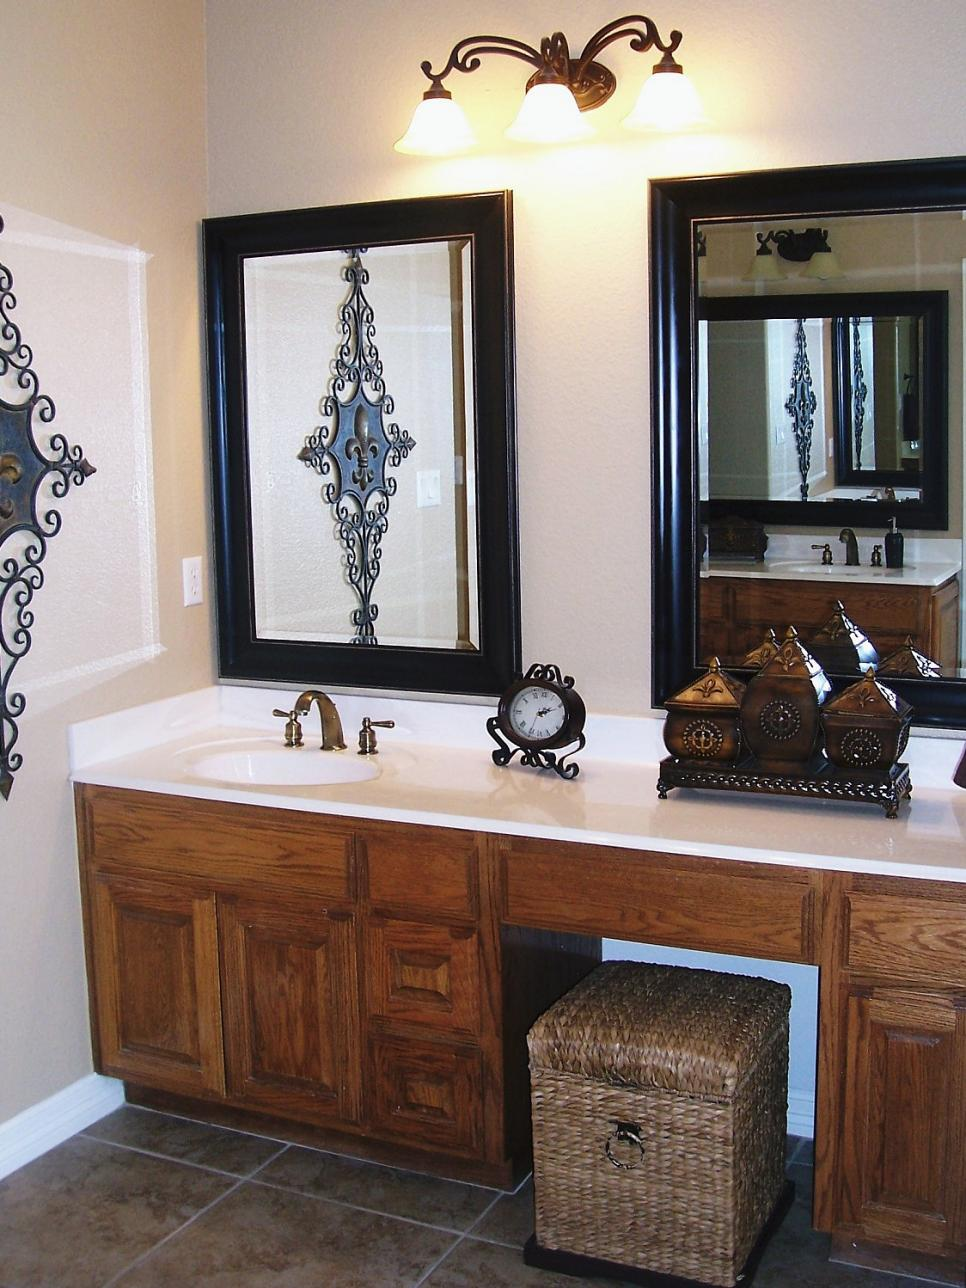 Bathroom mirrors ideas with vanity - Bathroom Mirrors Ideas With Vanity 0